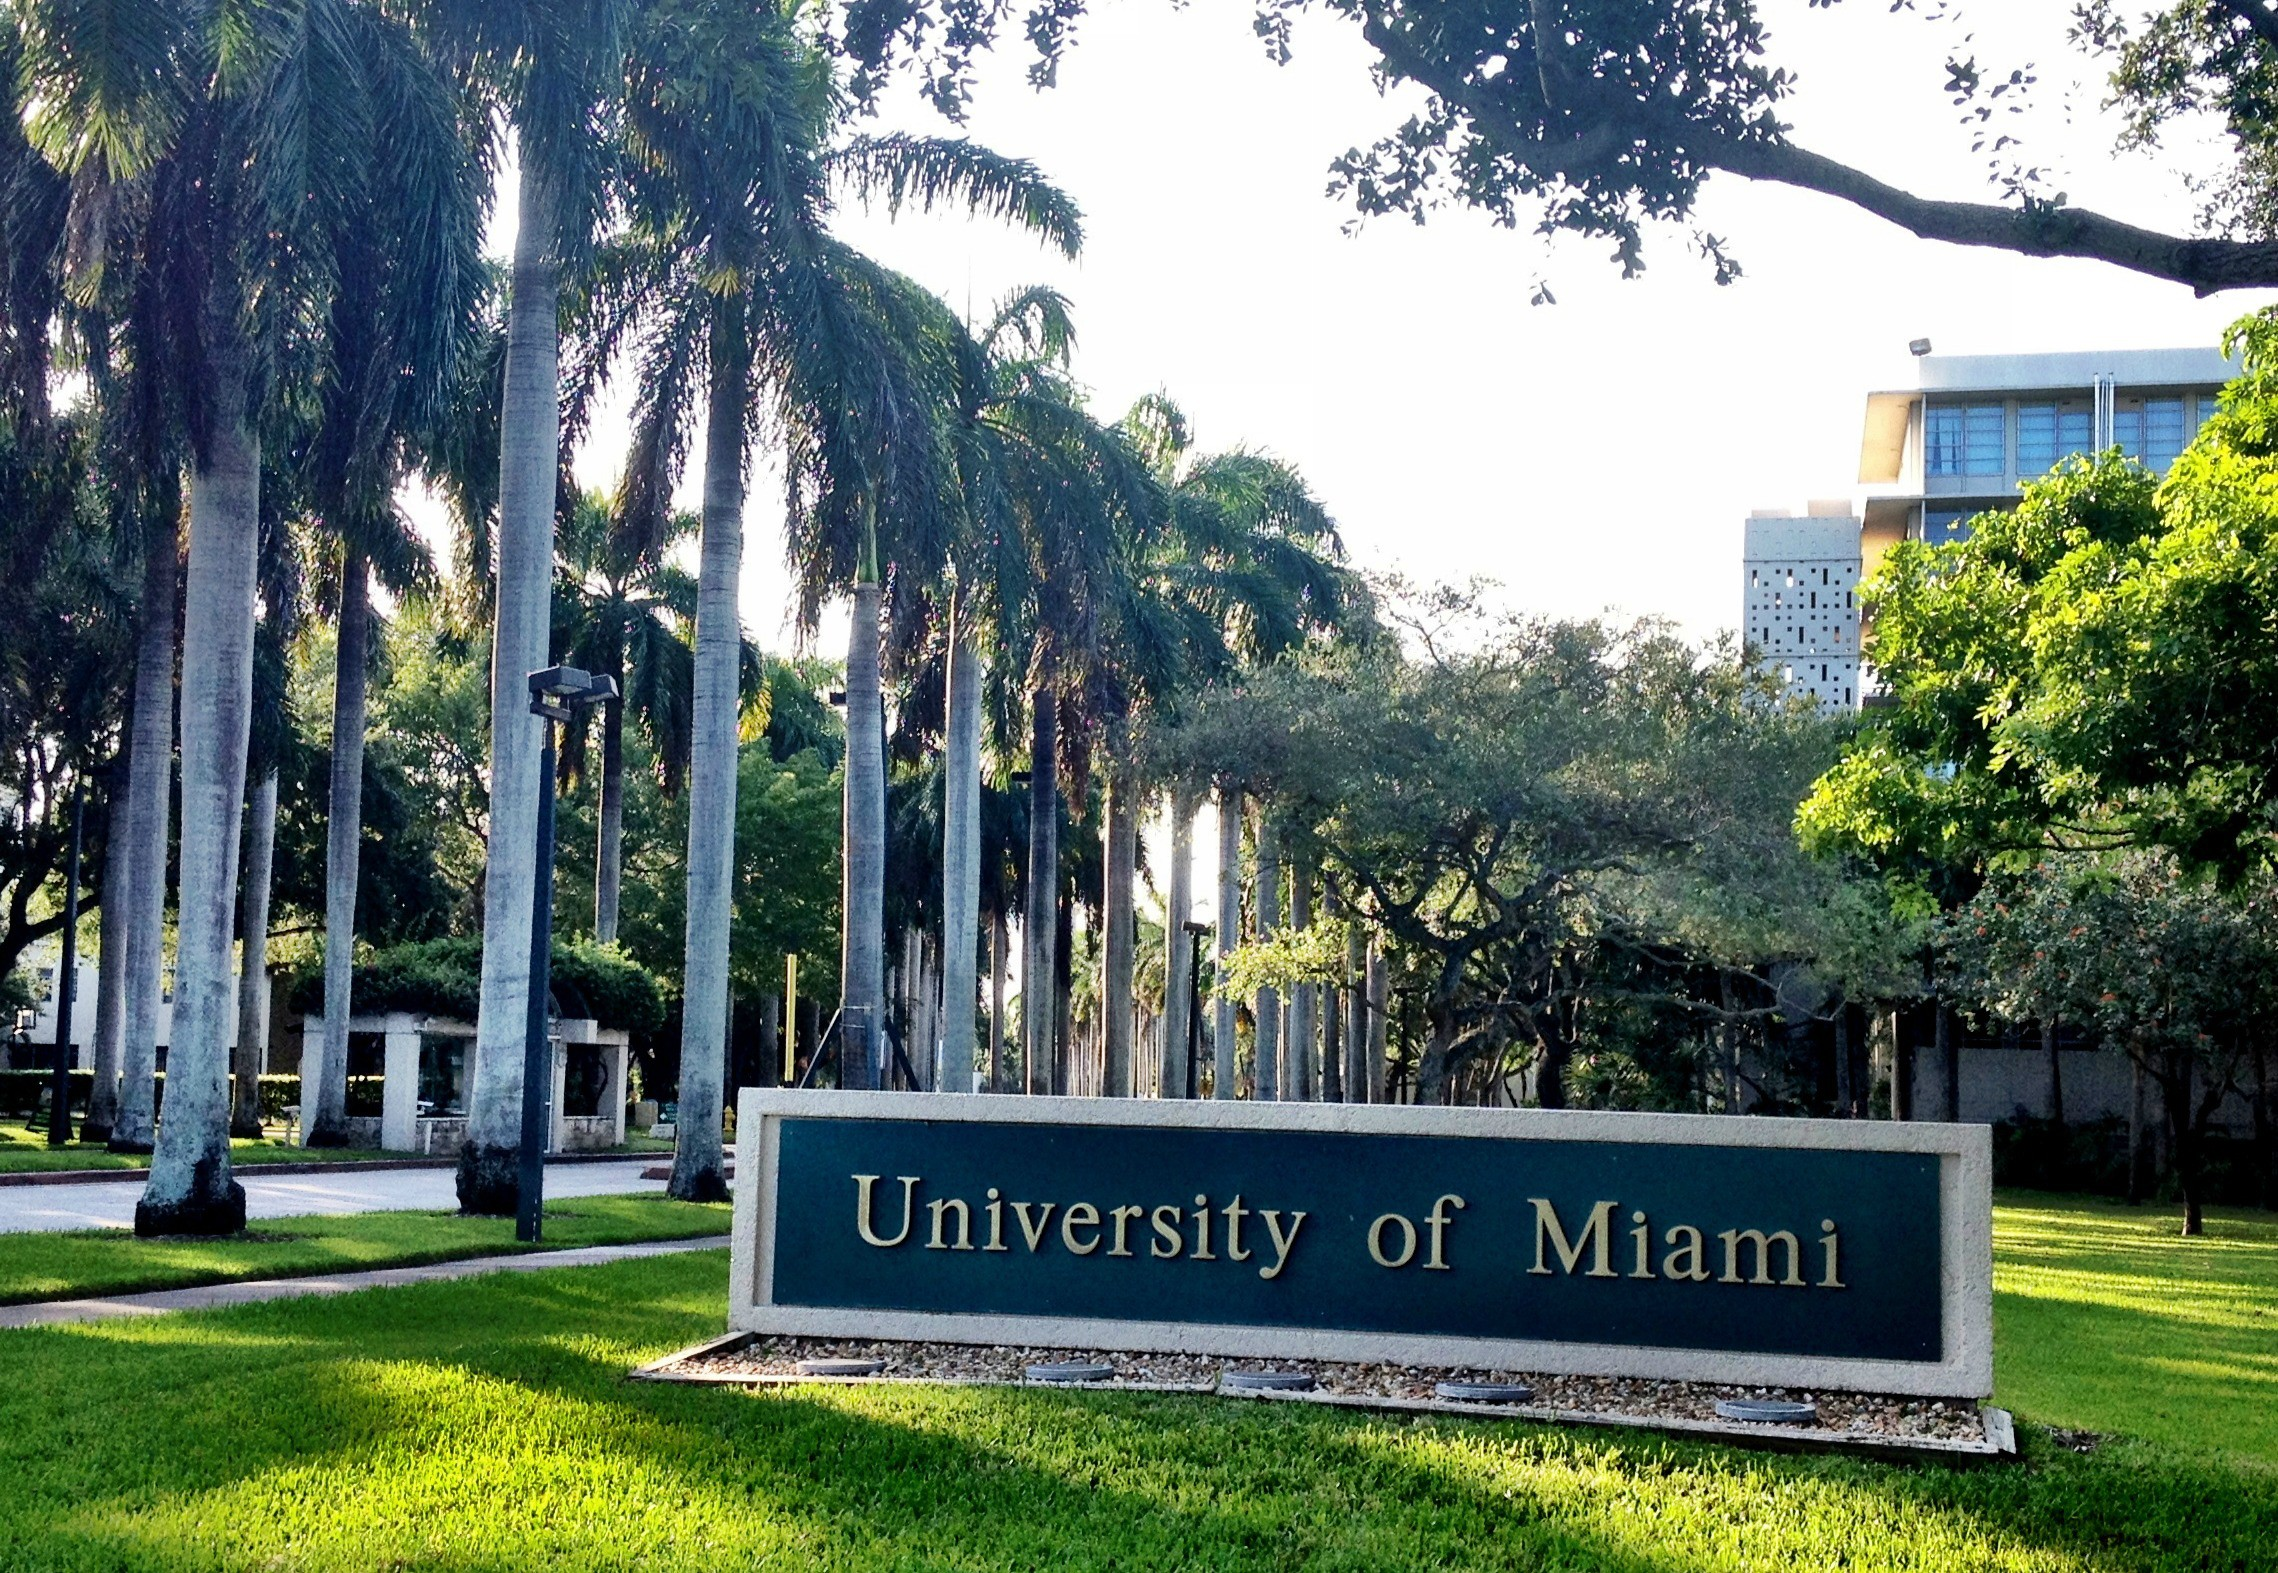 Archives at the University of Miami